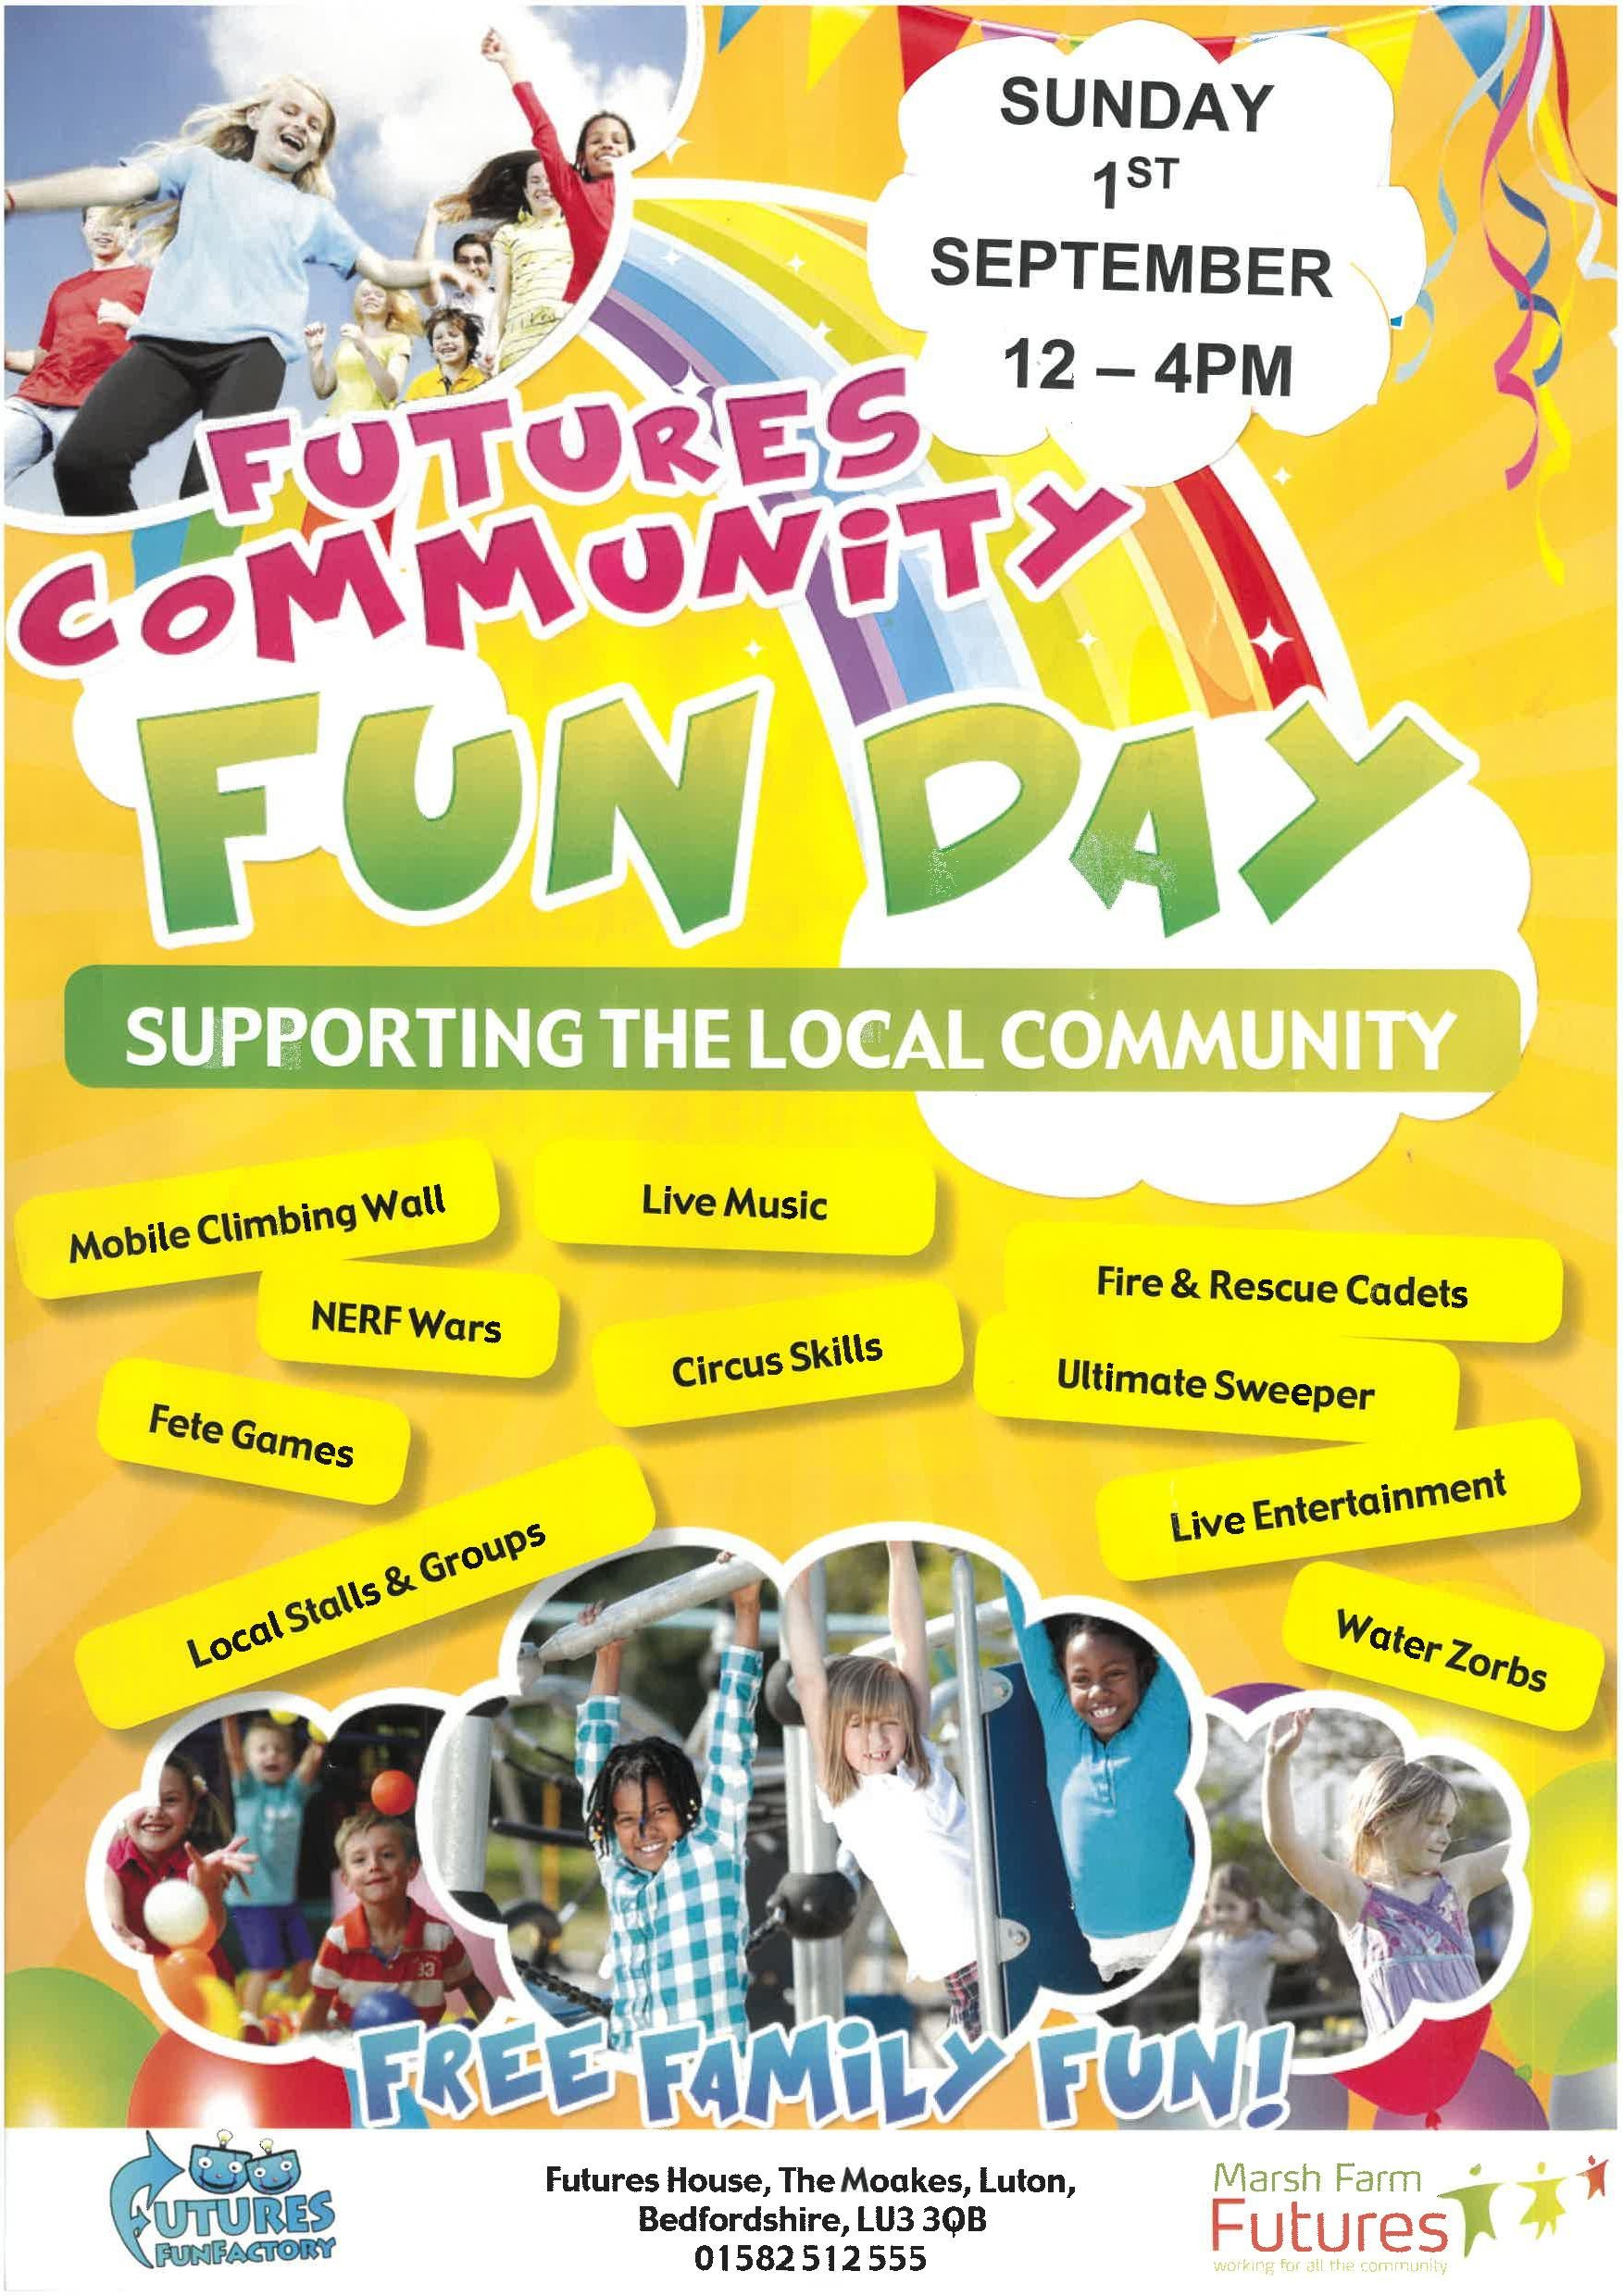 New Date For Futures Community Fun Day 2019 Marsh Farm